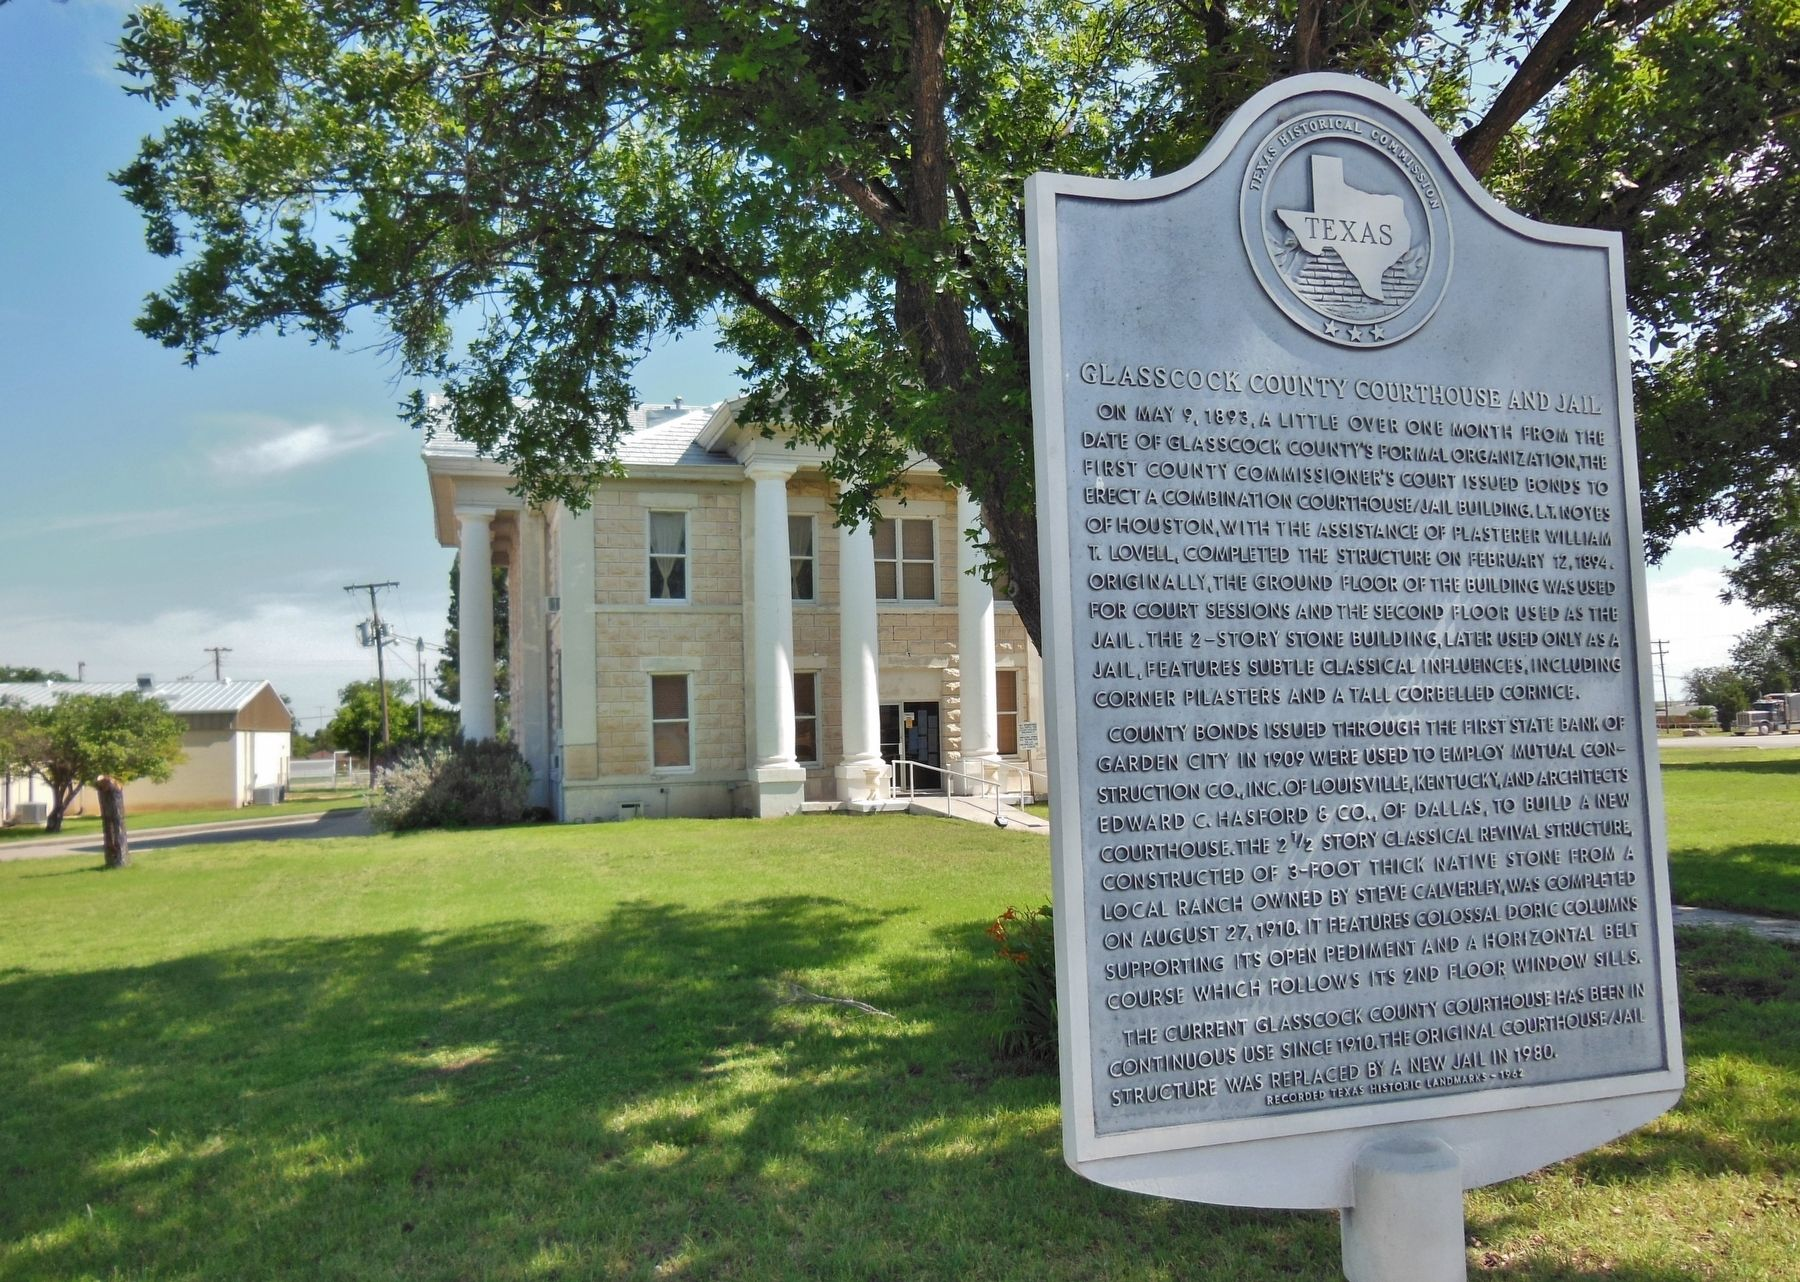 Glasscock County Courthouse and Jail Marker (<i>wide view; Glasscock County Courthouse in back</i>) image. Click for full size.